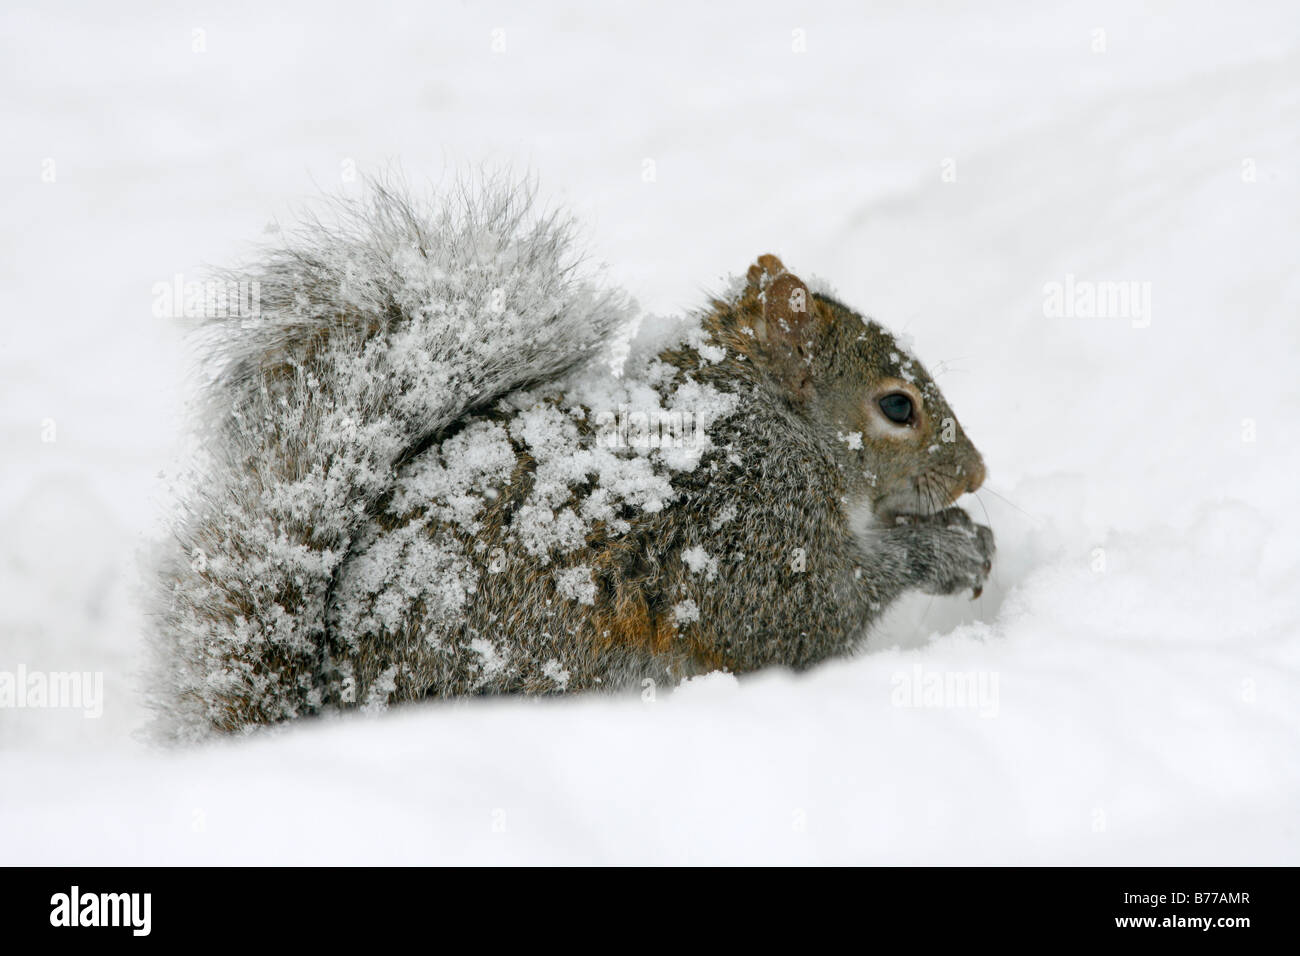 Eastern Gray Squirrel in Snow - Stock Image